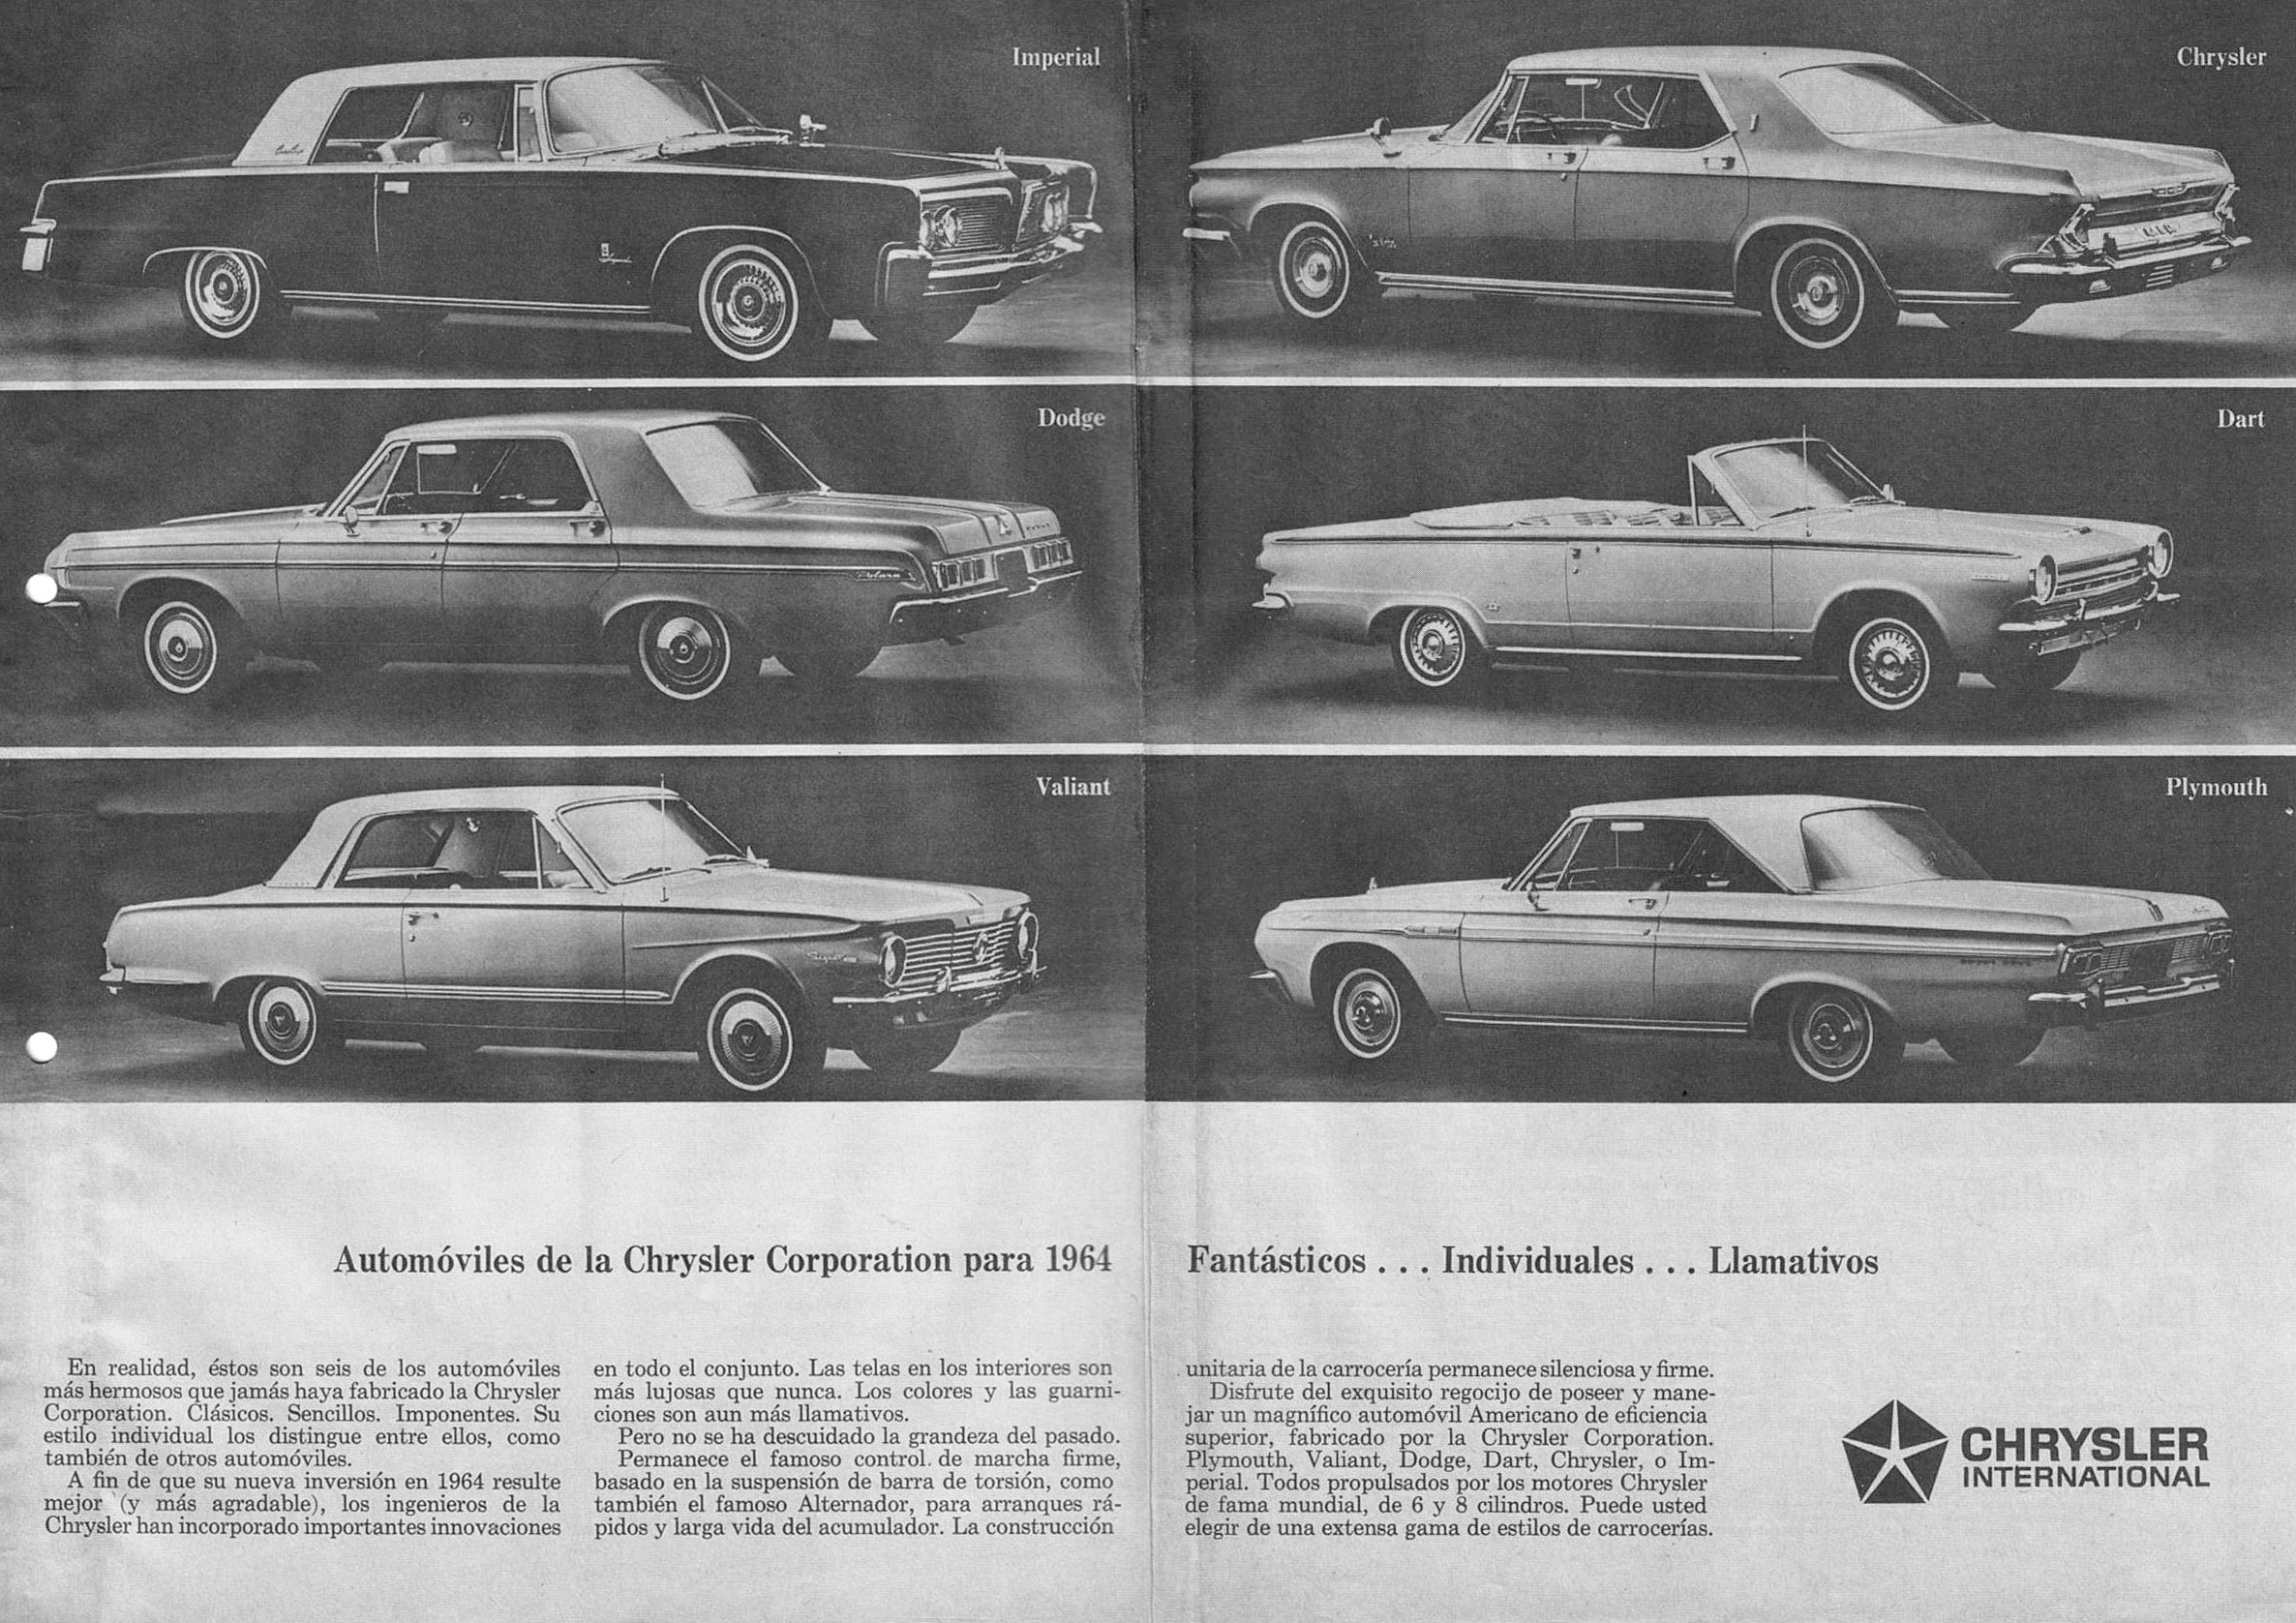 htm index imperial articles queen corporation of chrysler dowager page